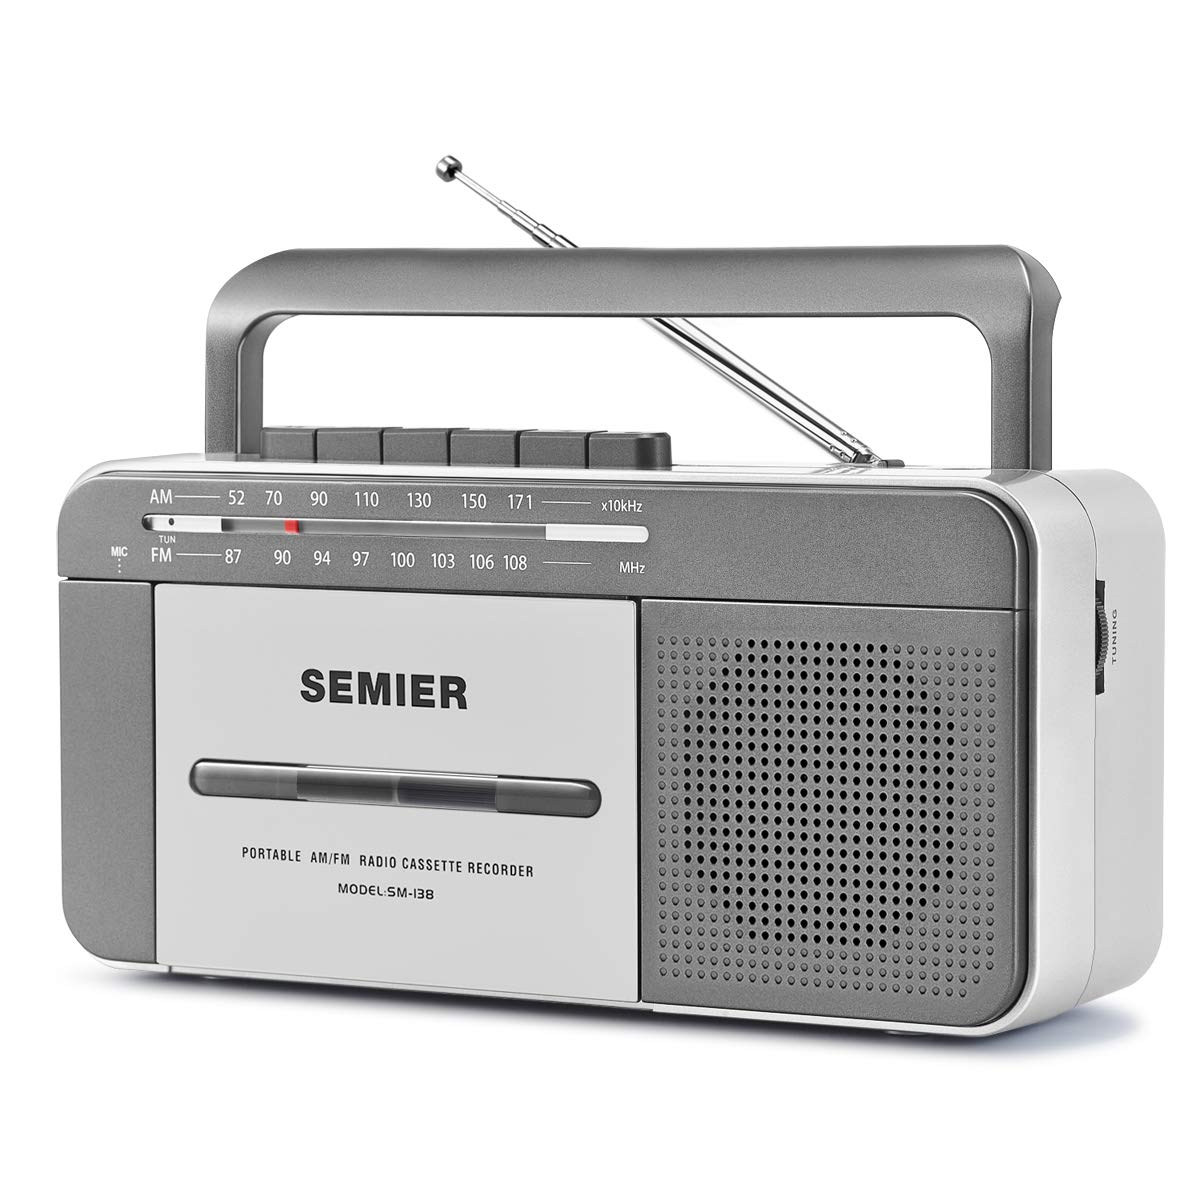 SEMIER Portable Boombox Retro Tape Cassette Player/Recorder with AM/FM Radio Stereo Build in Speakers, Headphone Jack, Battery Operated by 4xC Cell Batteries or AC Power